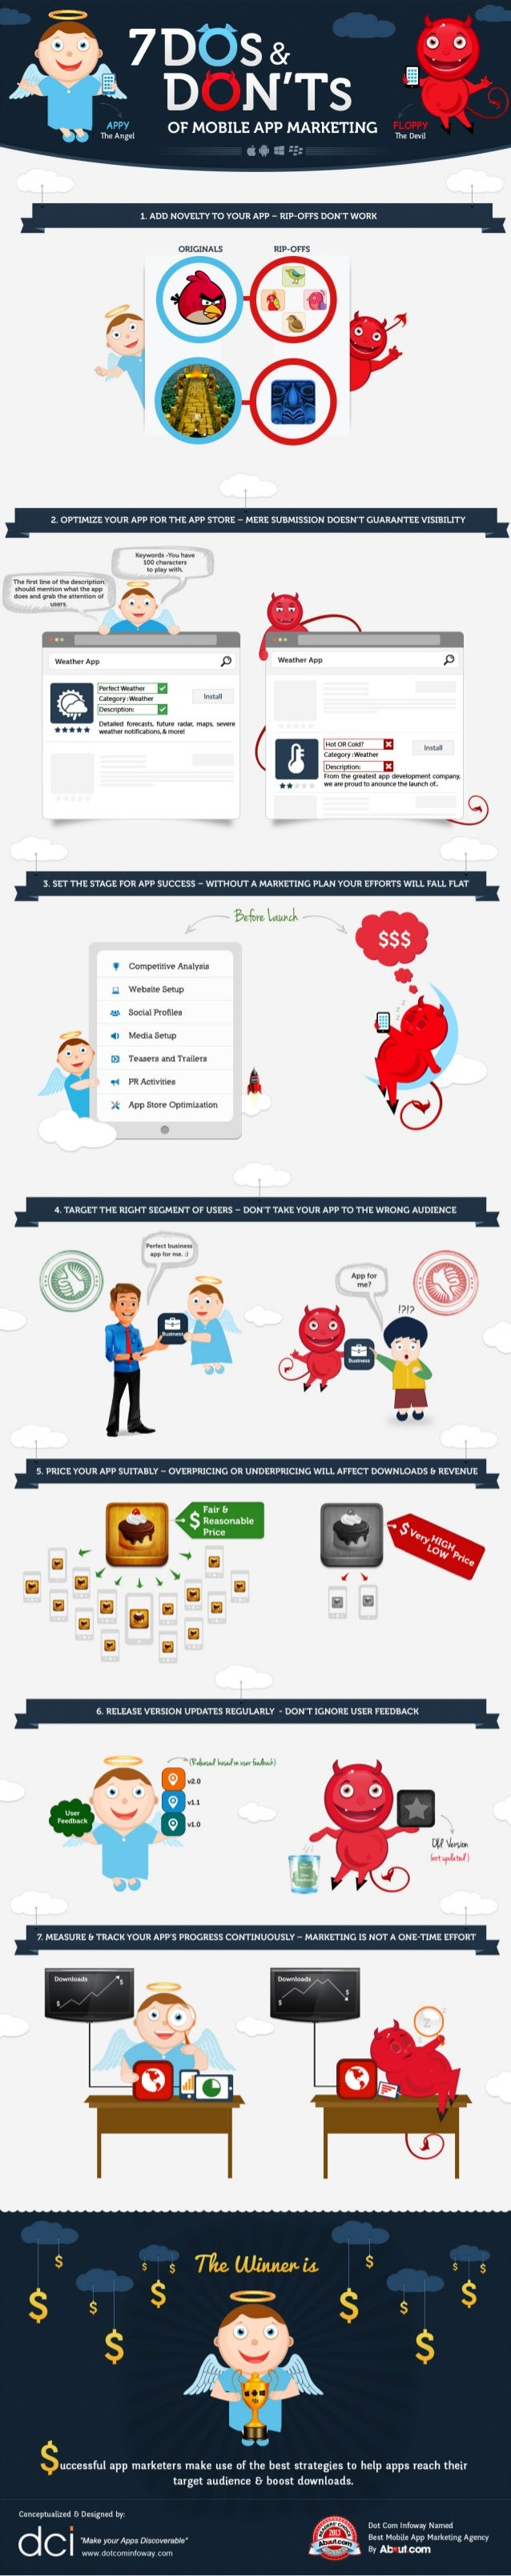 Mobile Apps Marketing Infographic - 7 do's and dont's of mobile apps marketing